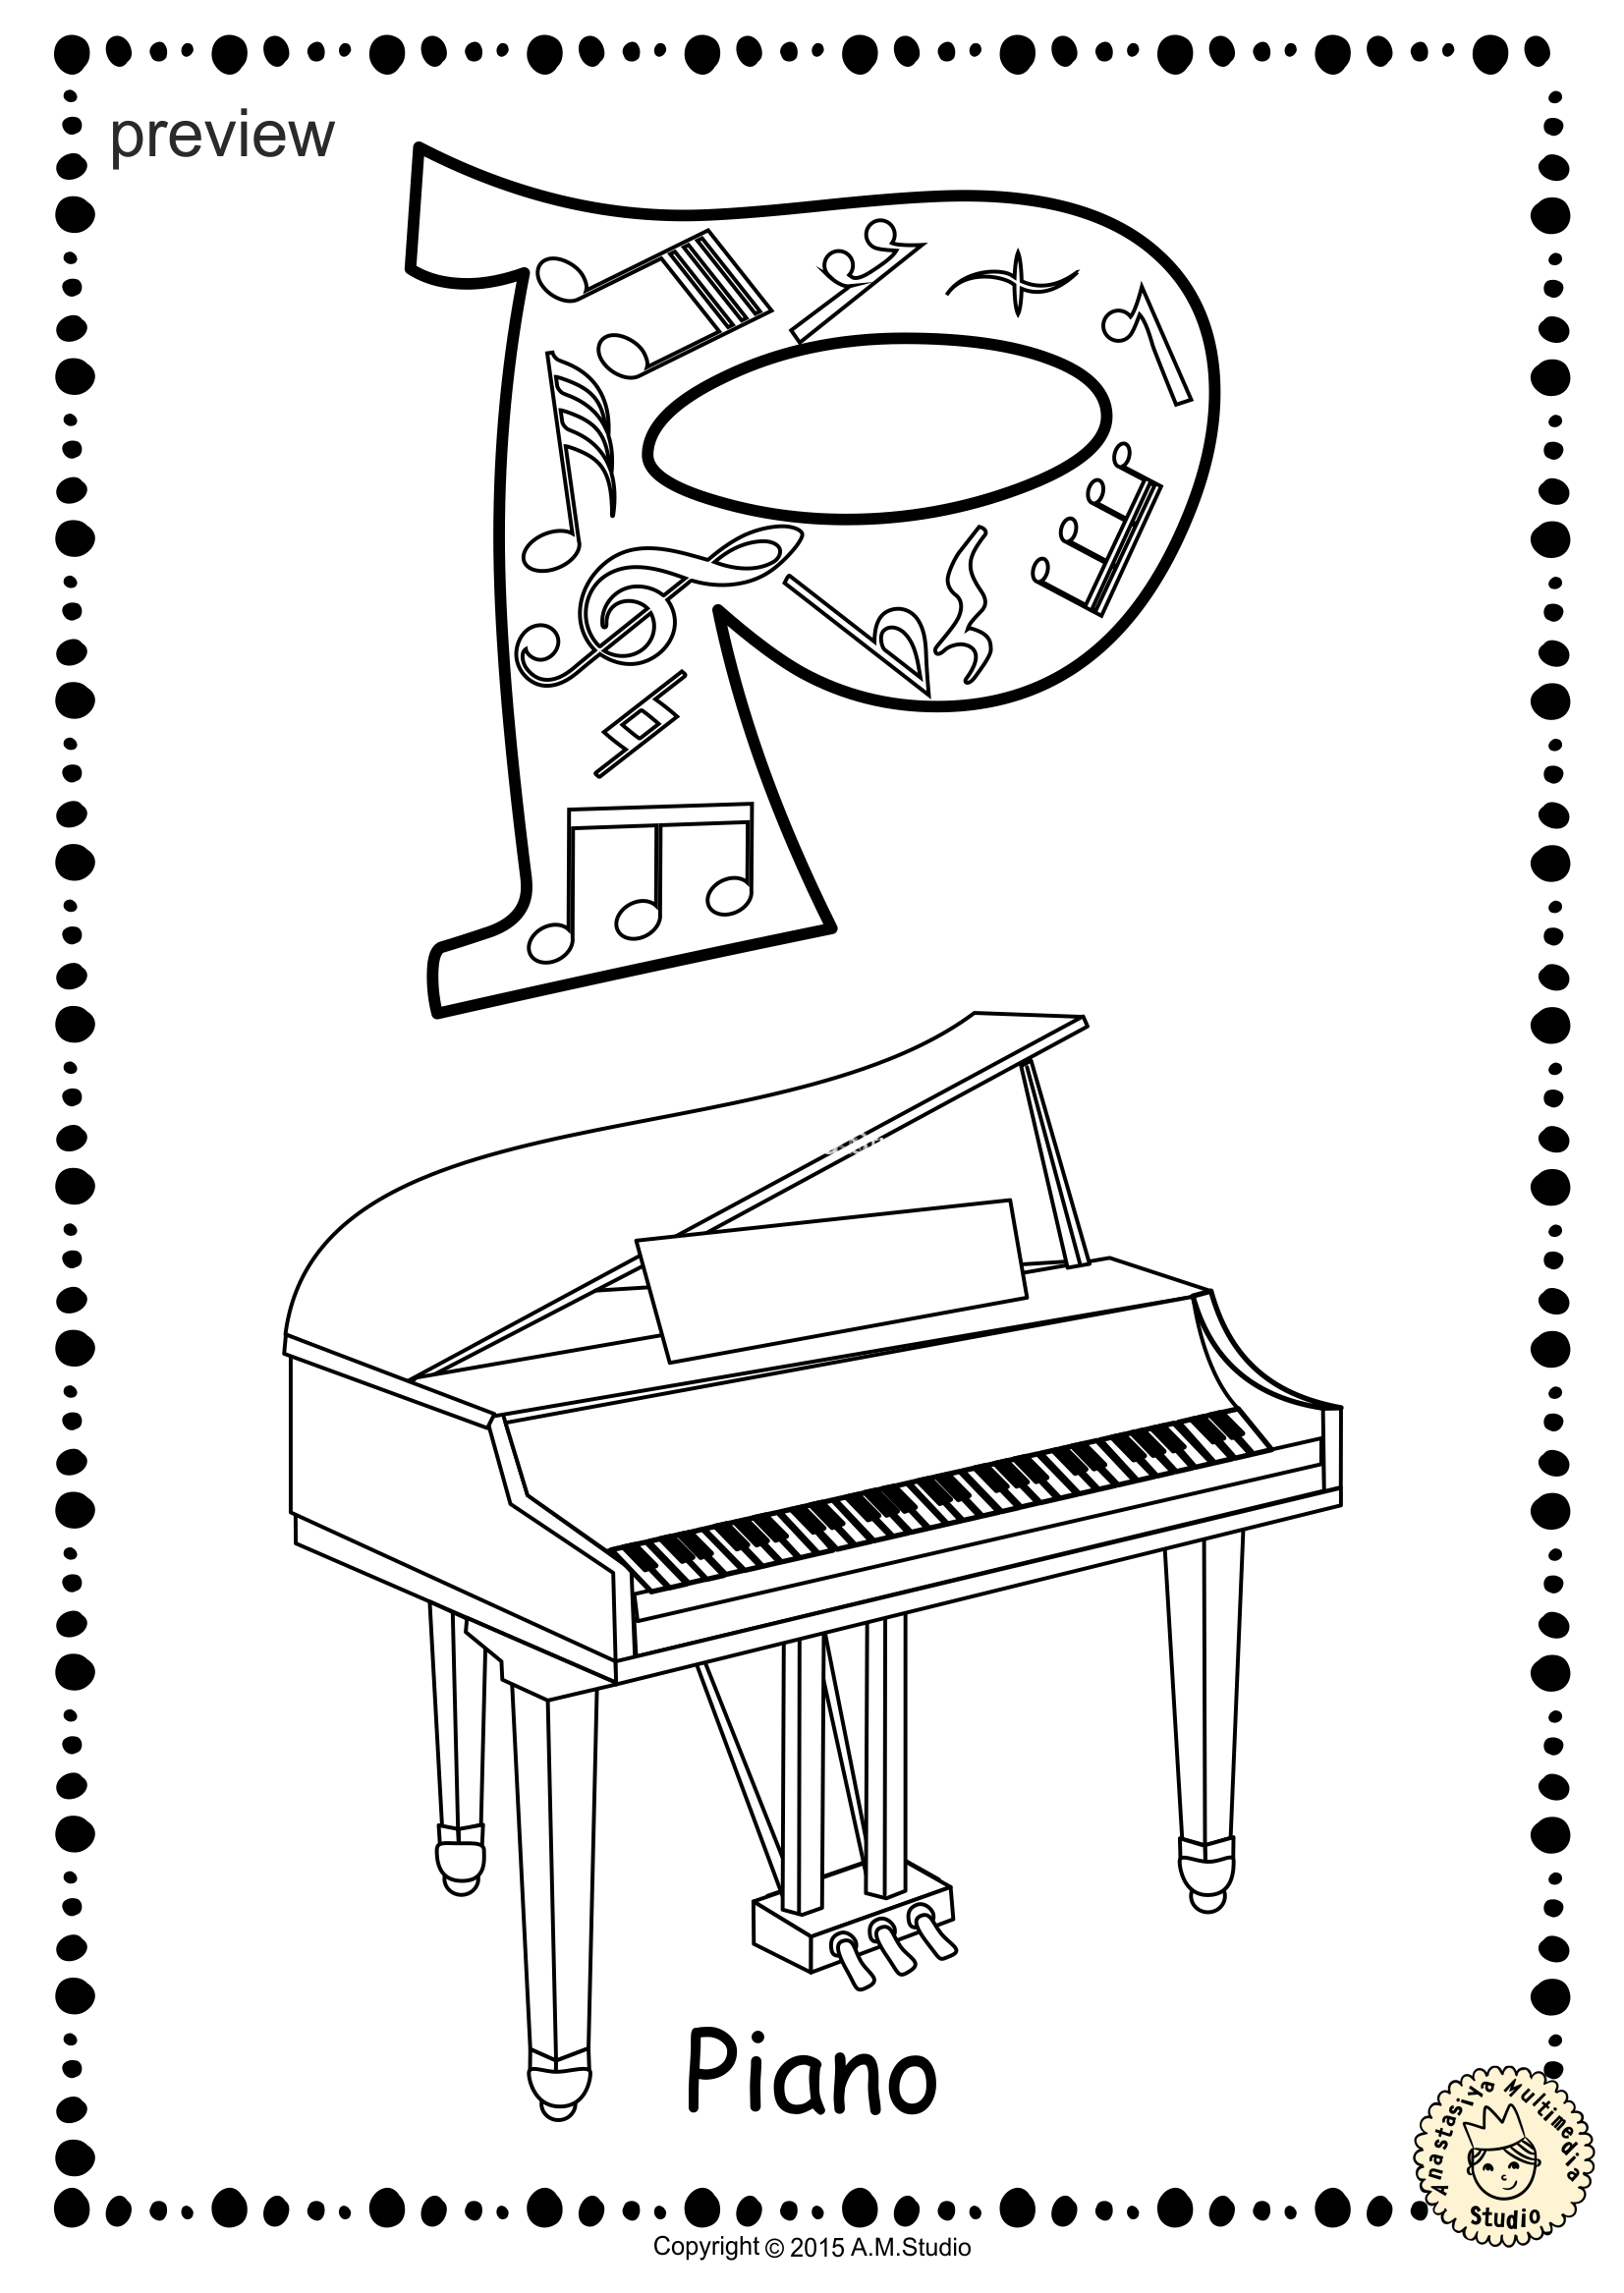 music note coloring pages pdf music coloring pages pdf at getdrawings free download coloring note pdf music pages